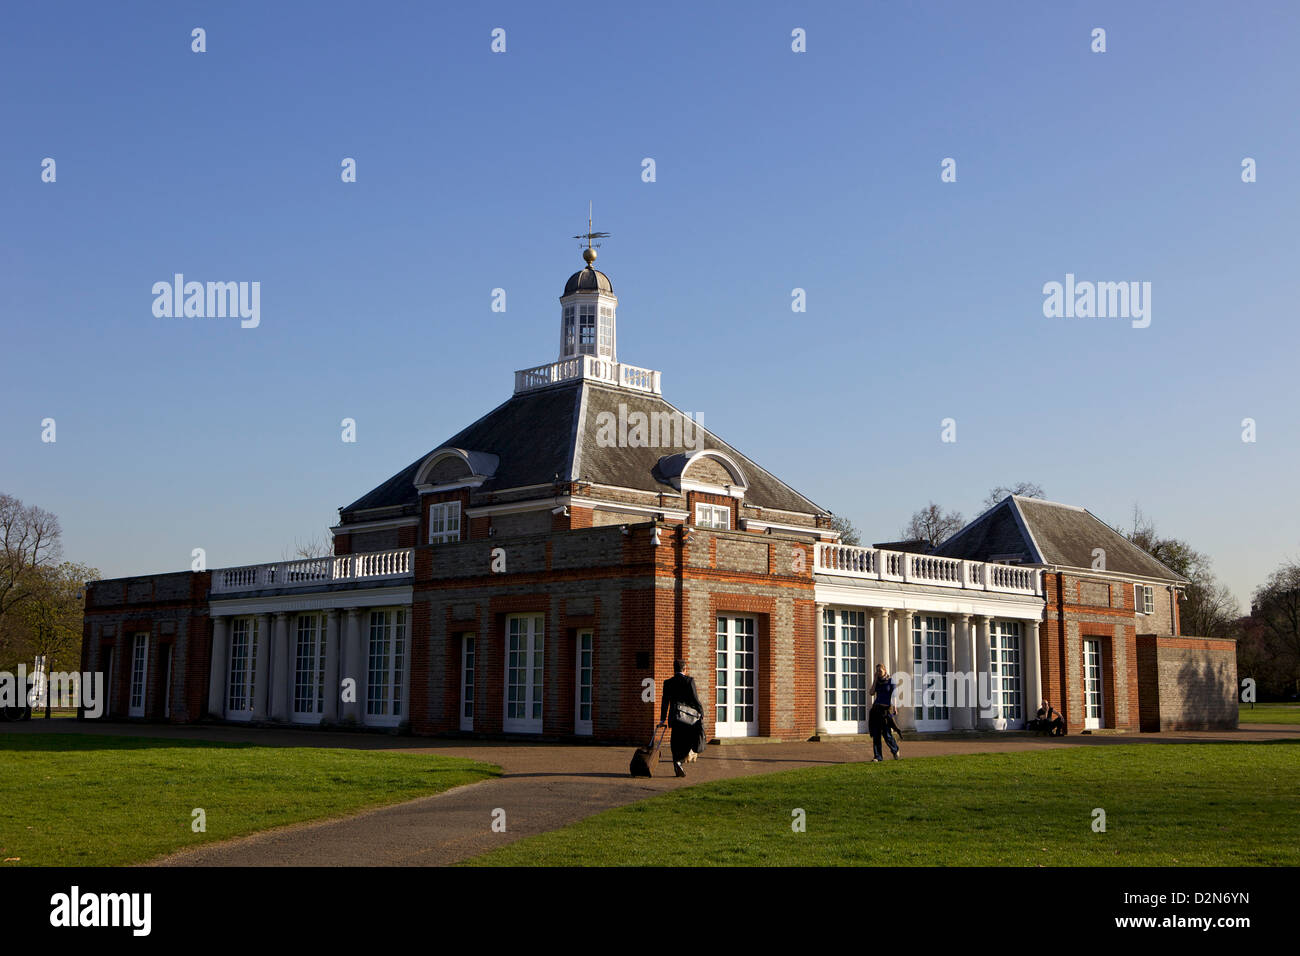 The Serpentine Gallery, Kensington Gardens, London, England, United Kingdom, Europe - Stock Image